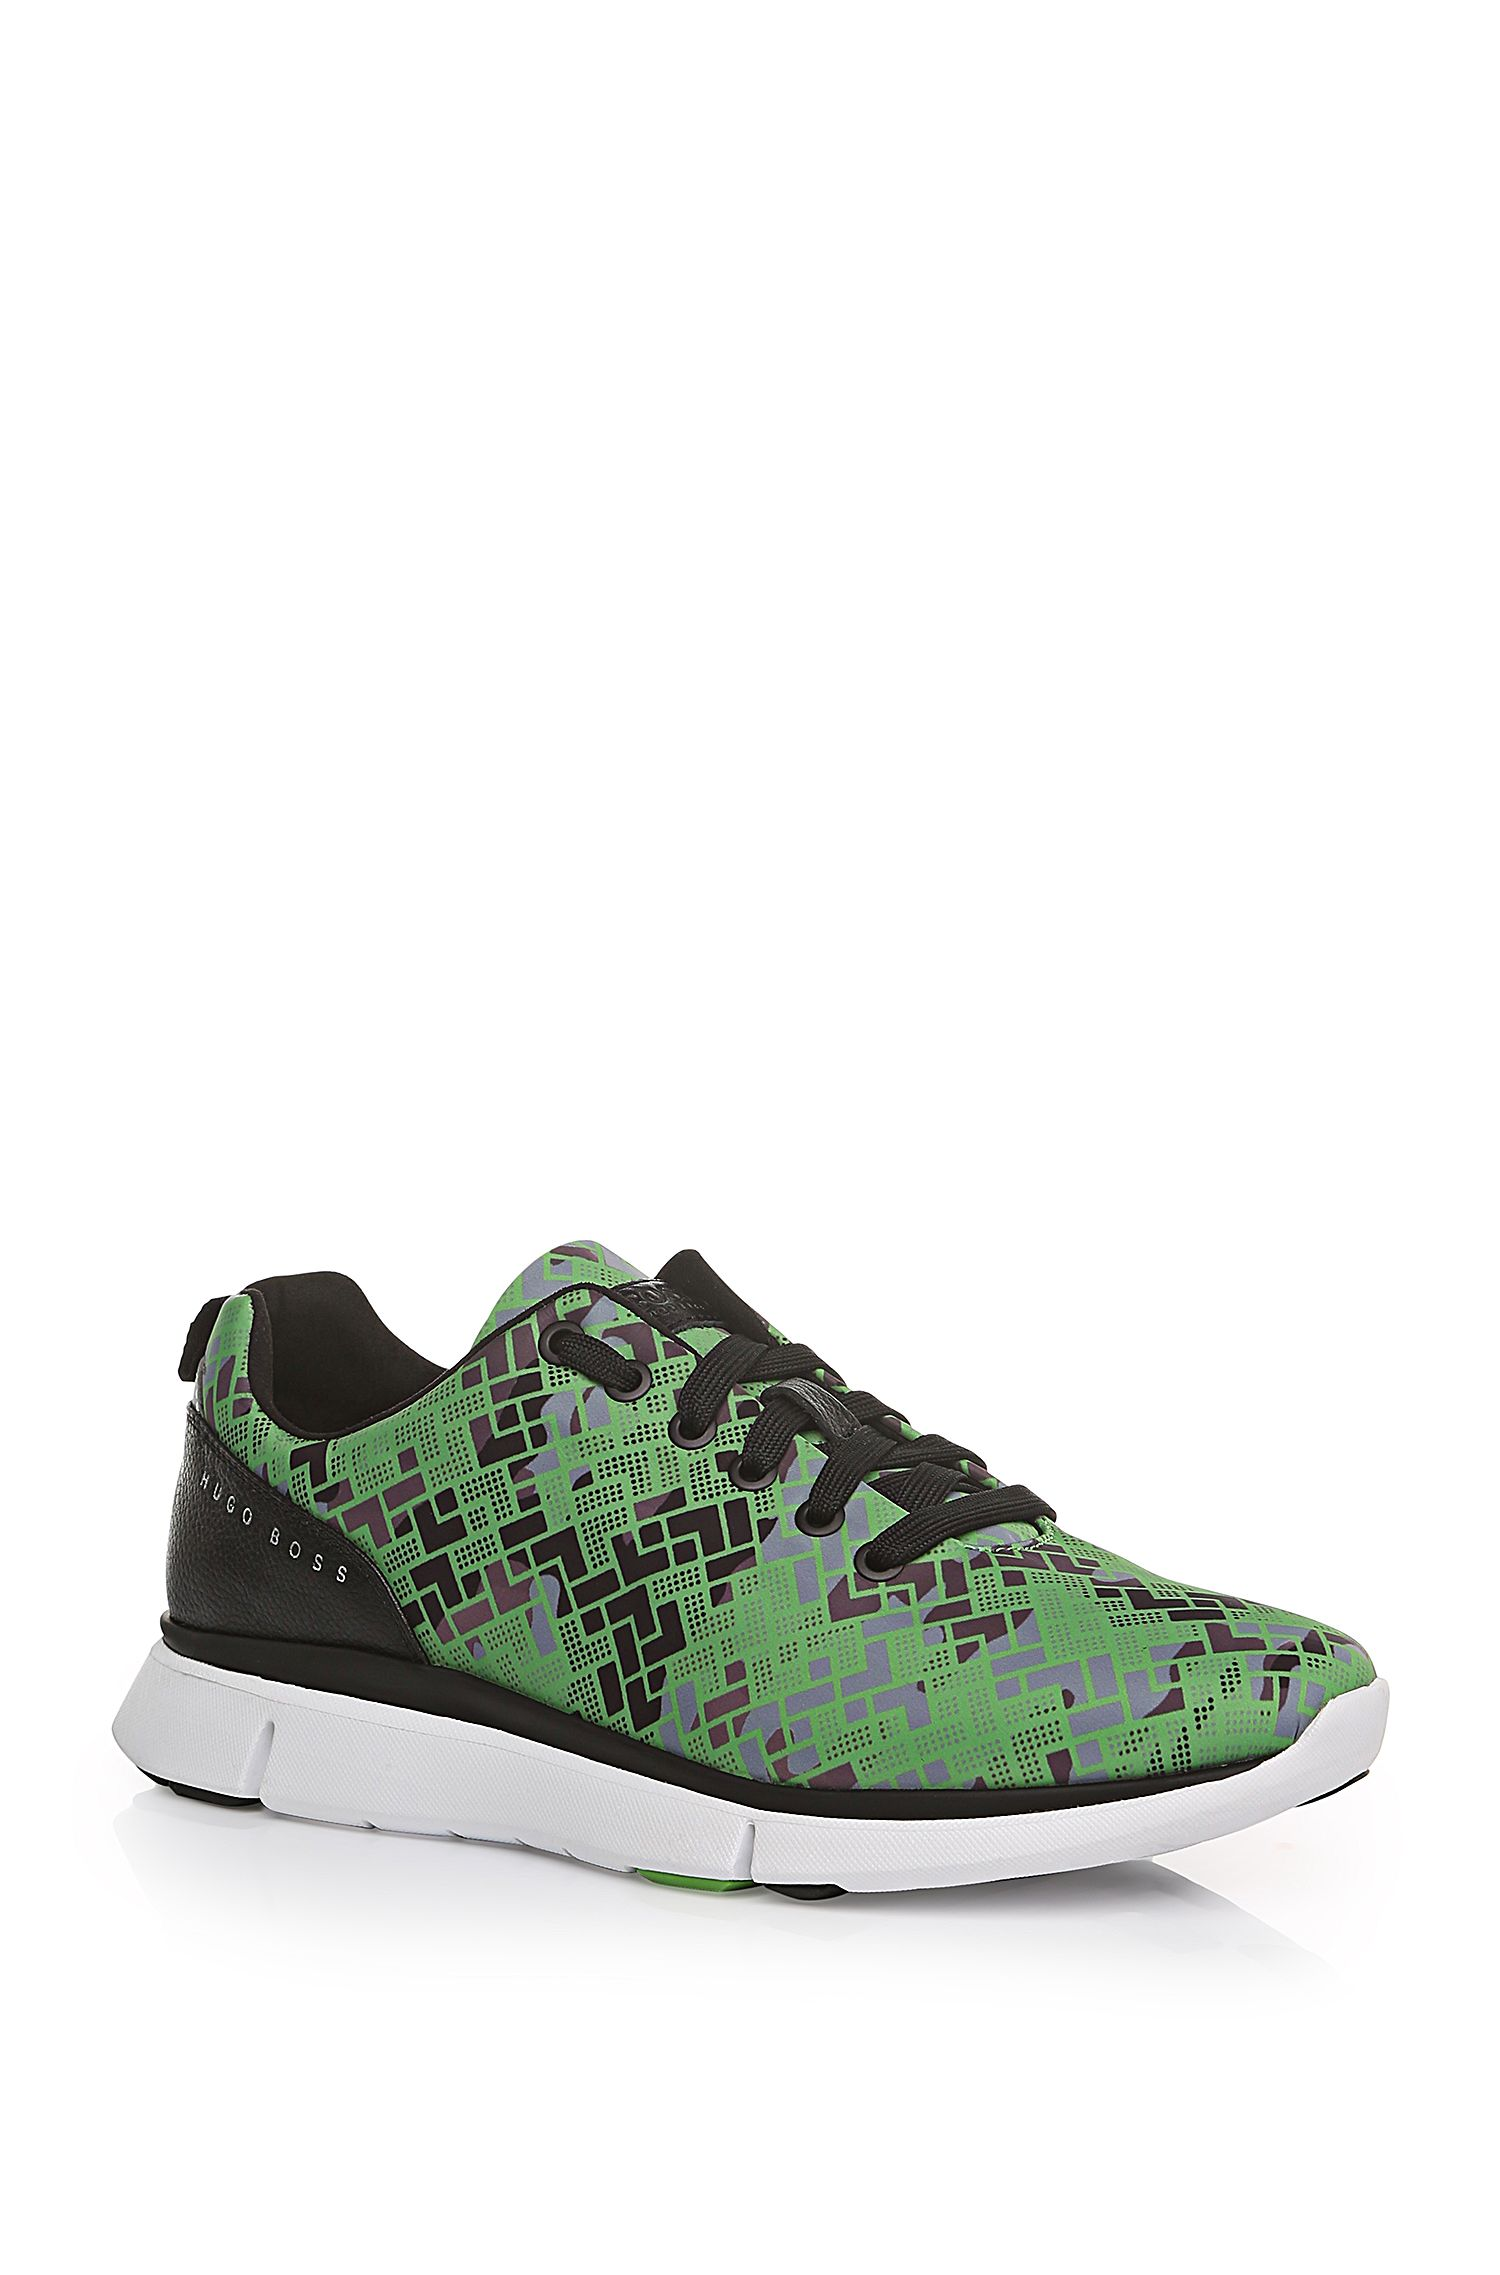 'Gym Print' | Printed Nylon Upper Sneakers